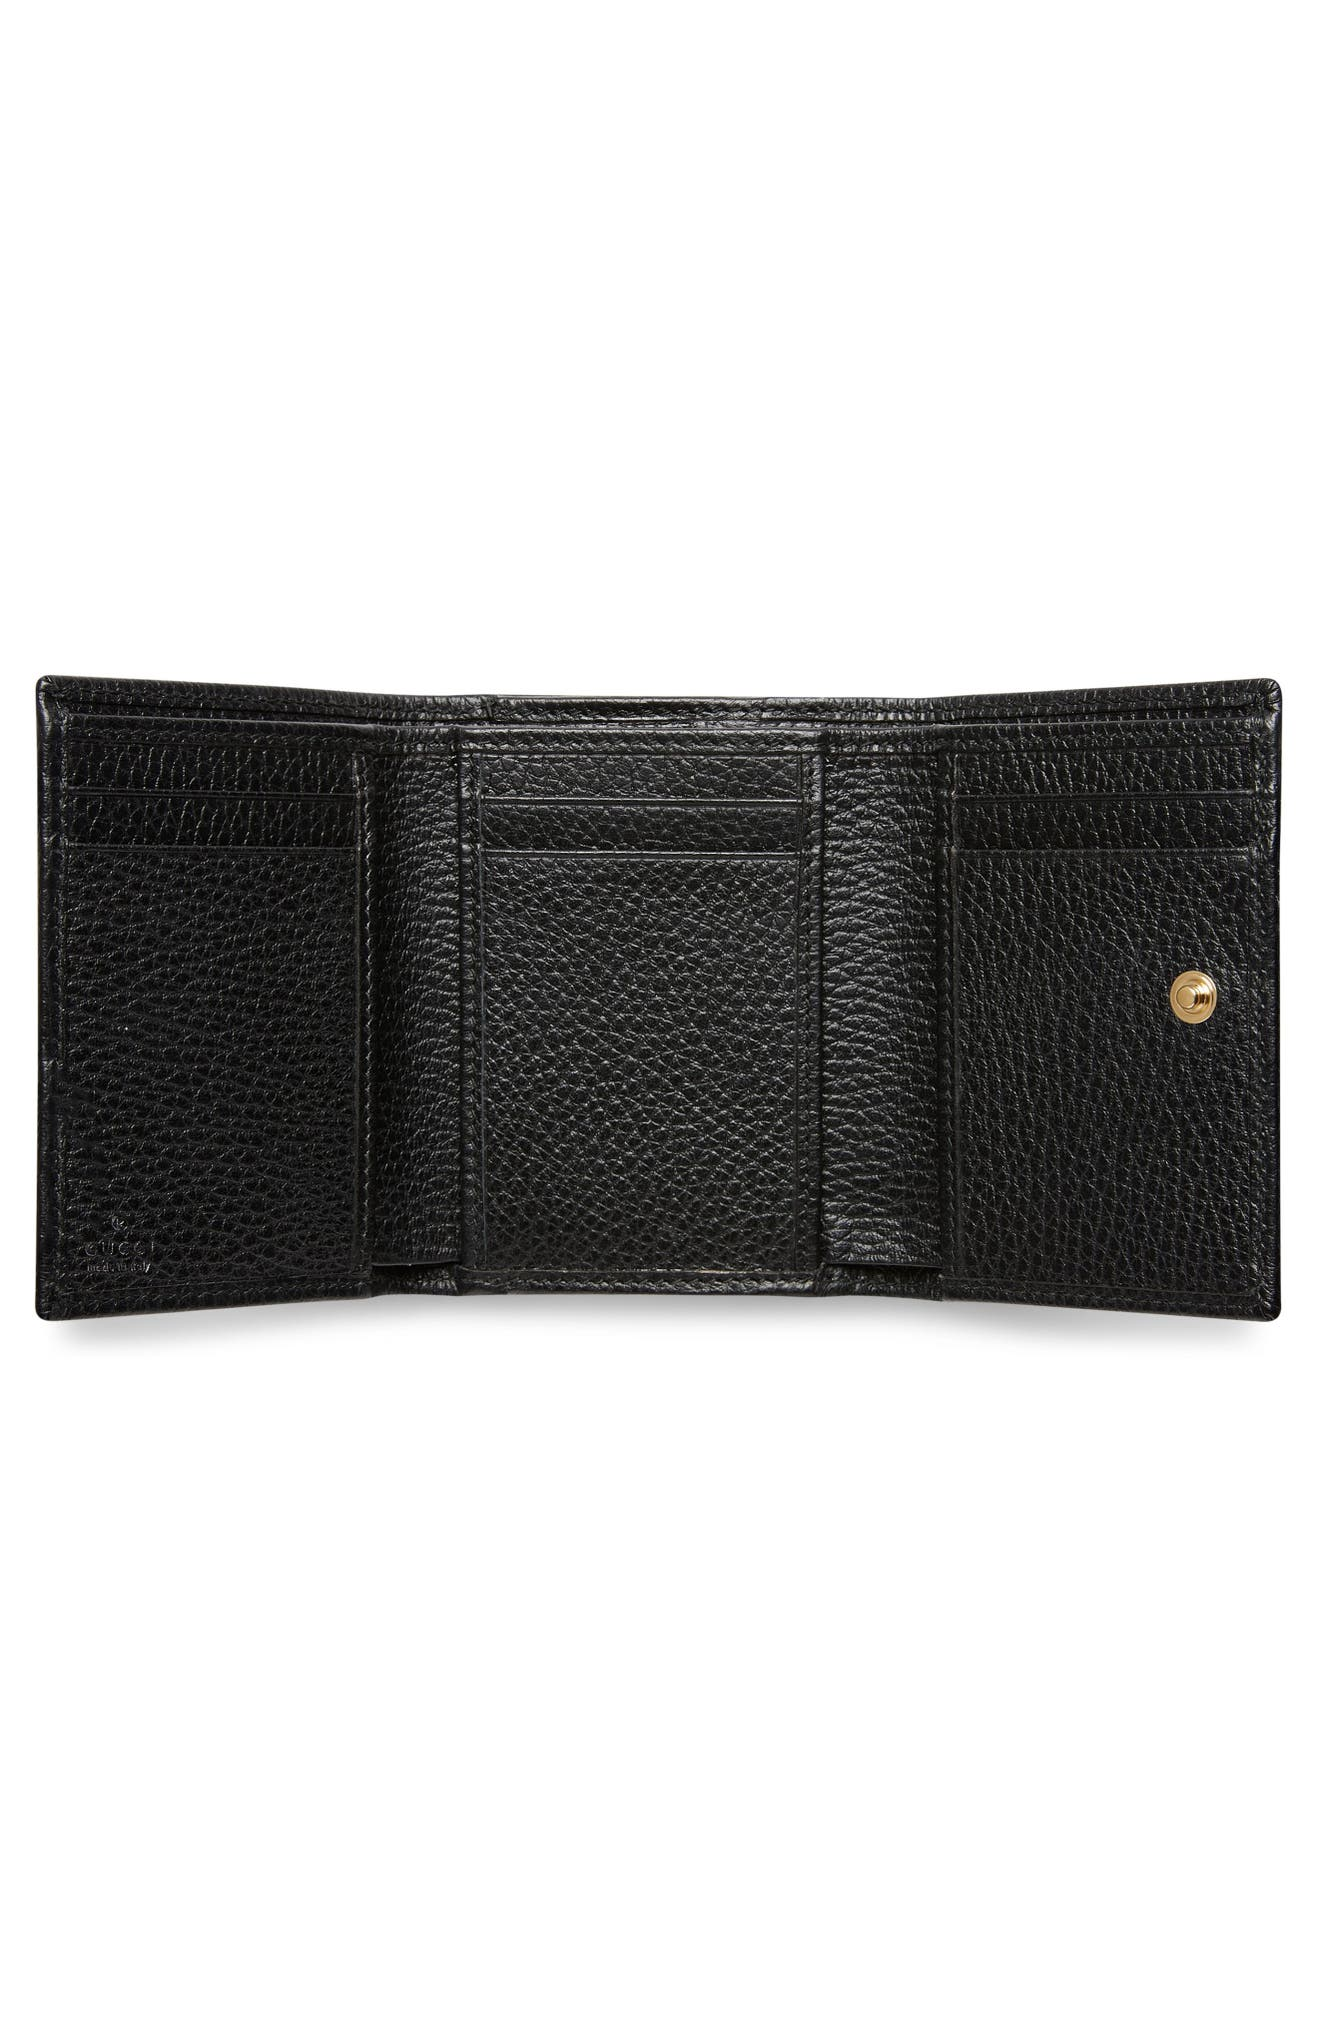 2ba19560b10 Gucci Petite Marmont Leather French Wallet